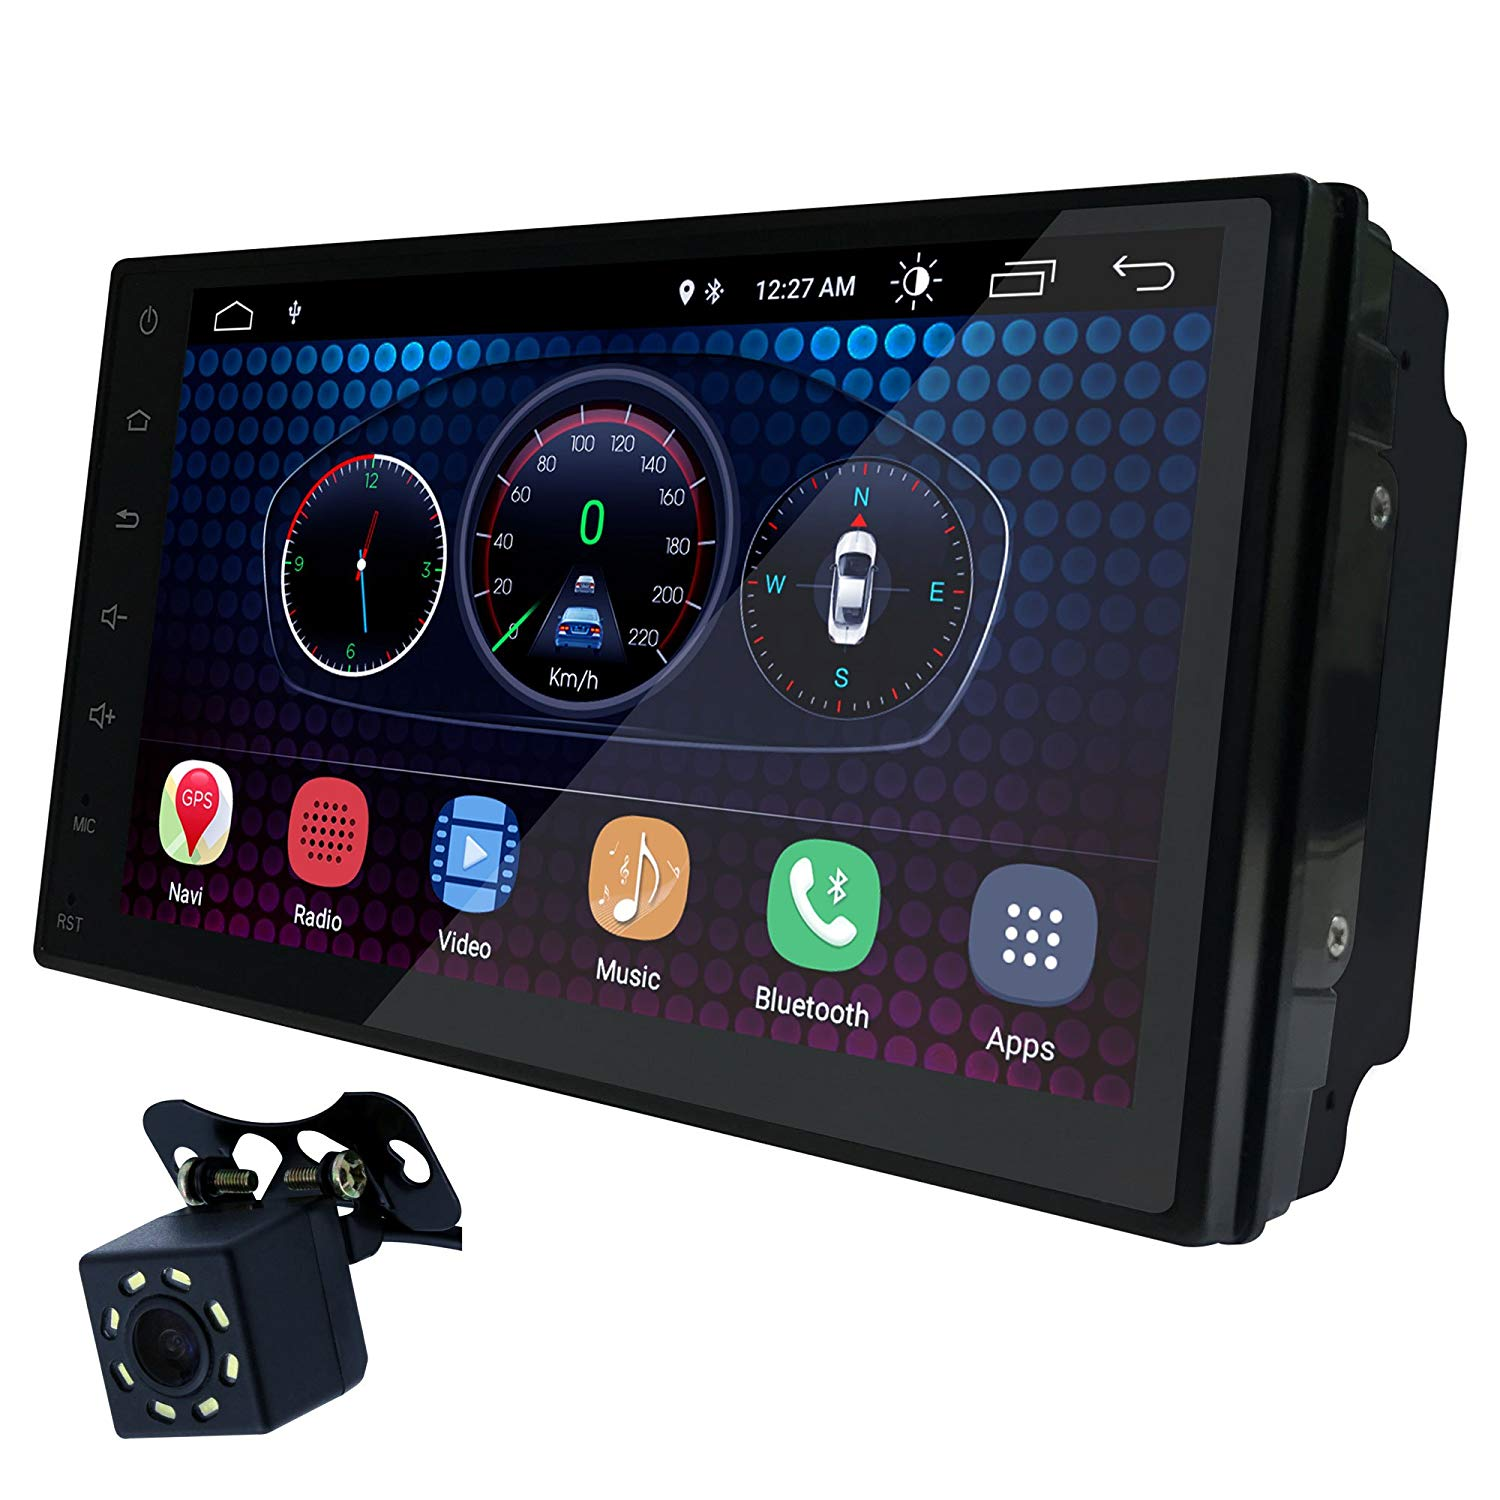 "UGAR 7"" Universal Car Stereo 1GB 16GB Android 6.0 Head Unit Double Din Touch Screen Radio Bluetooth WiFi Car Audio Indash GPS Navigation"